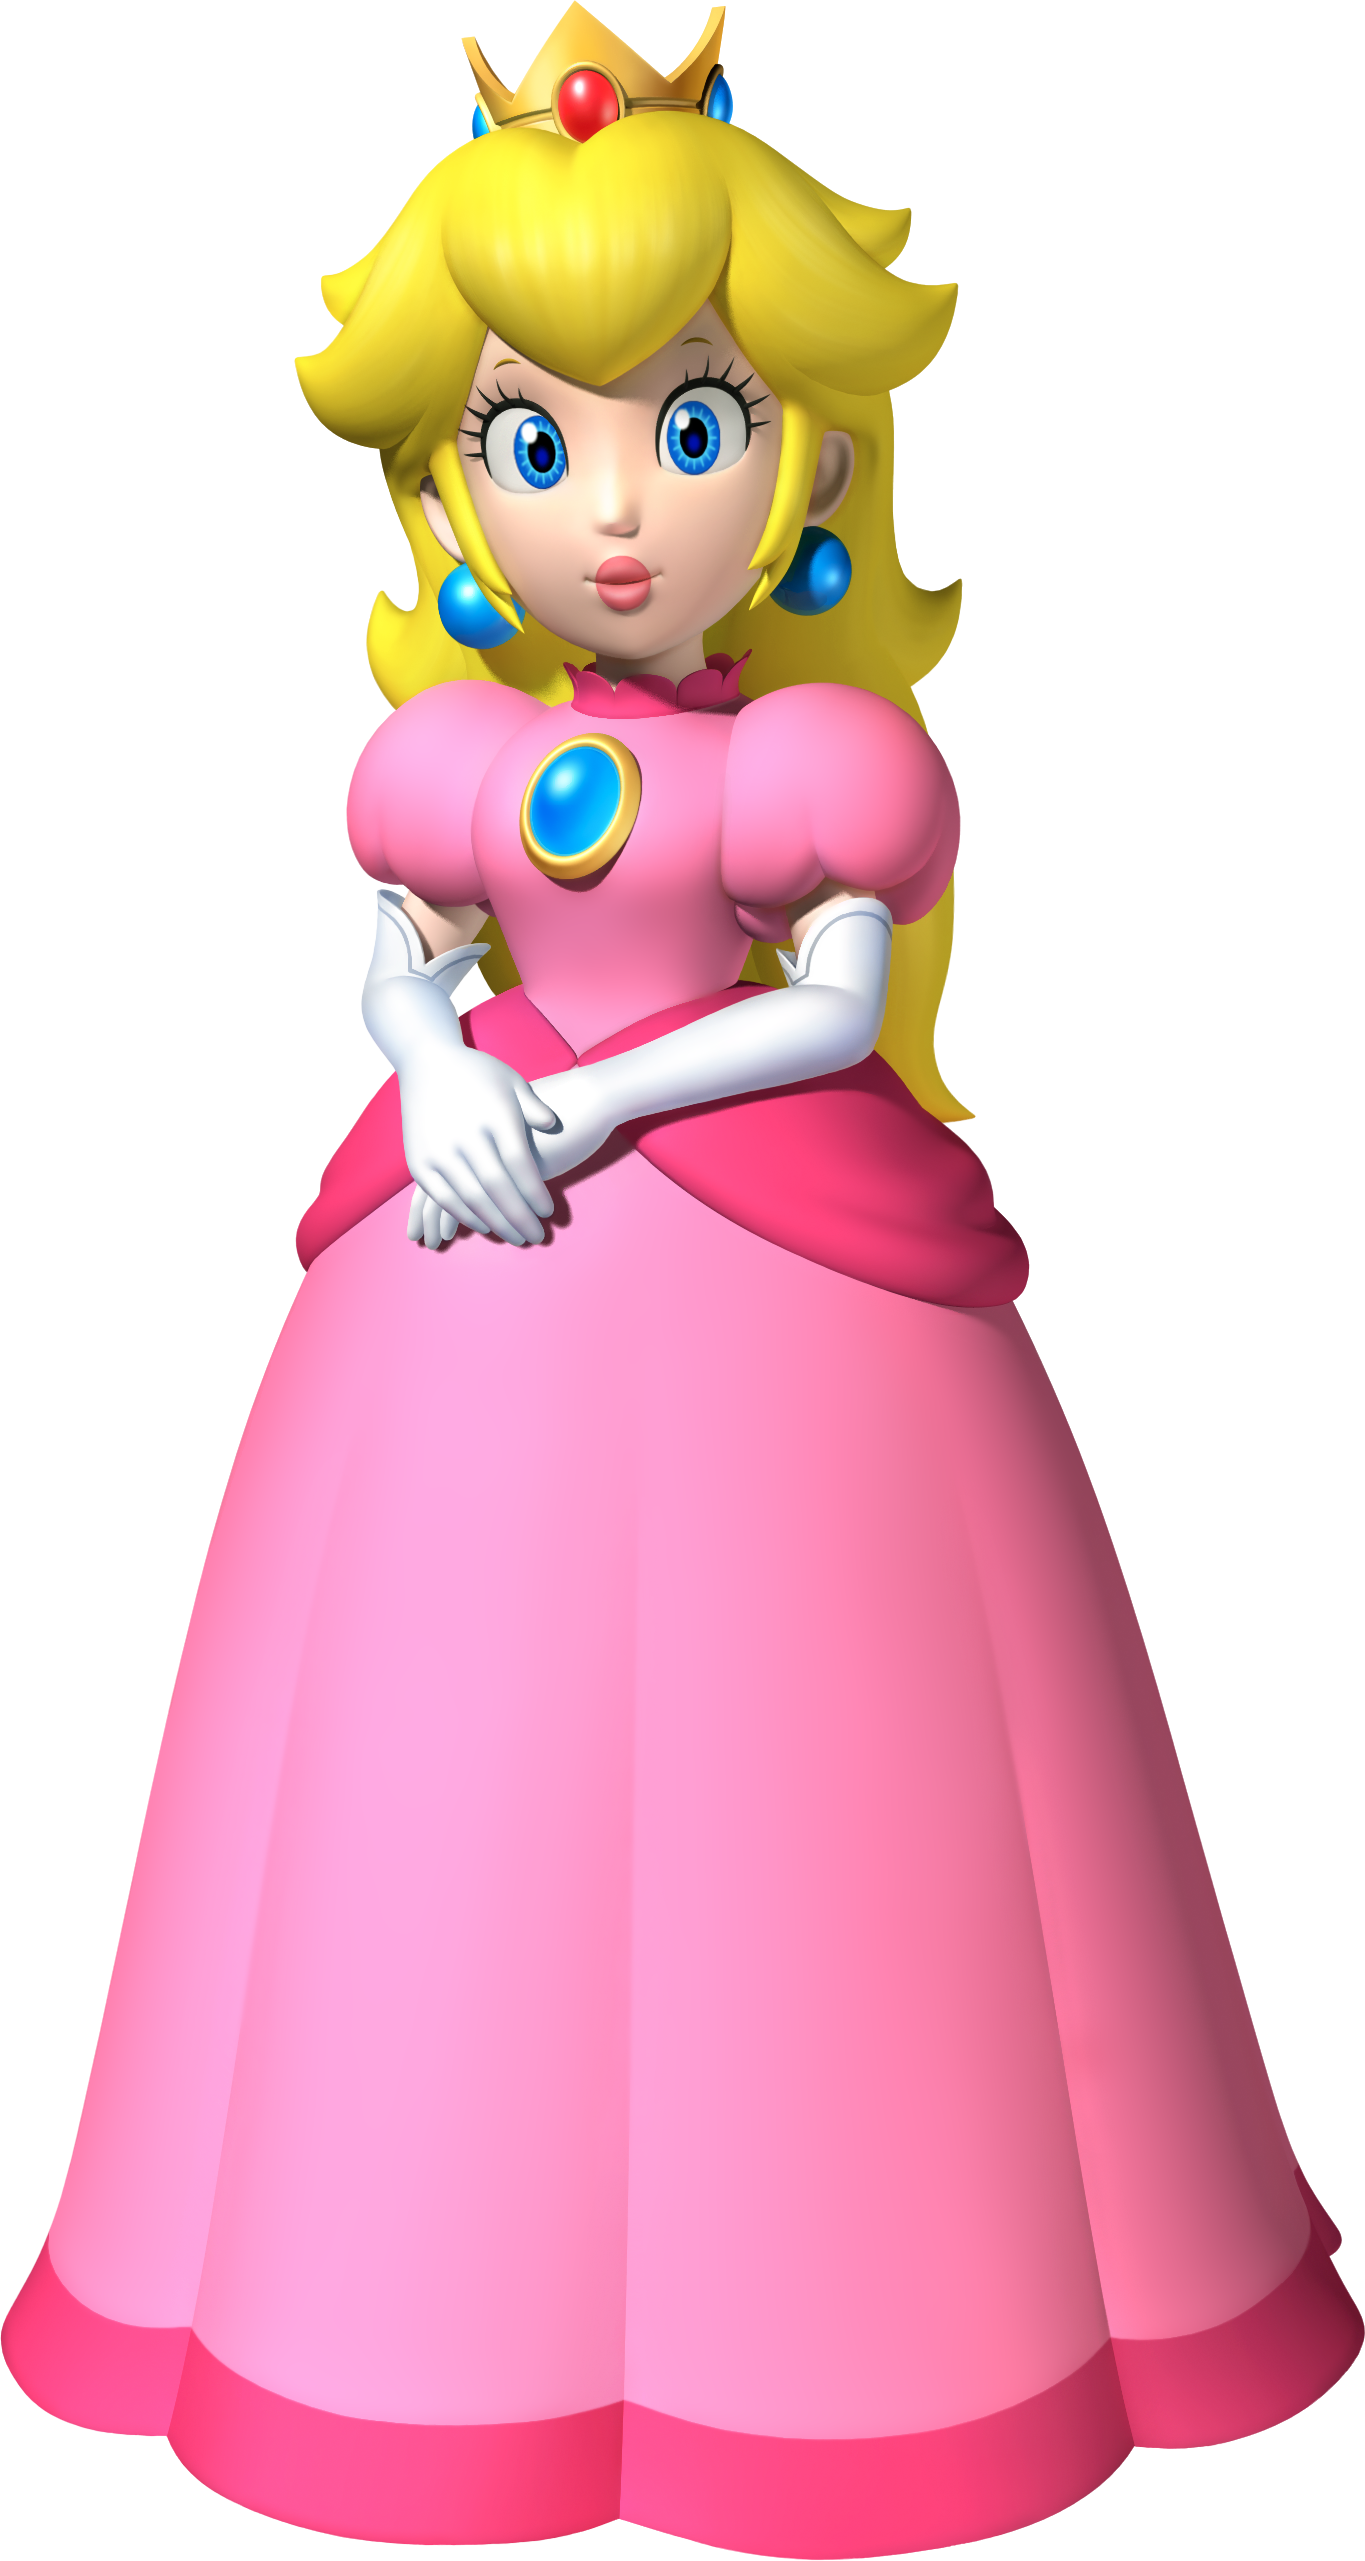 Princess Peach Super Mario Bros